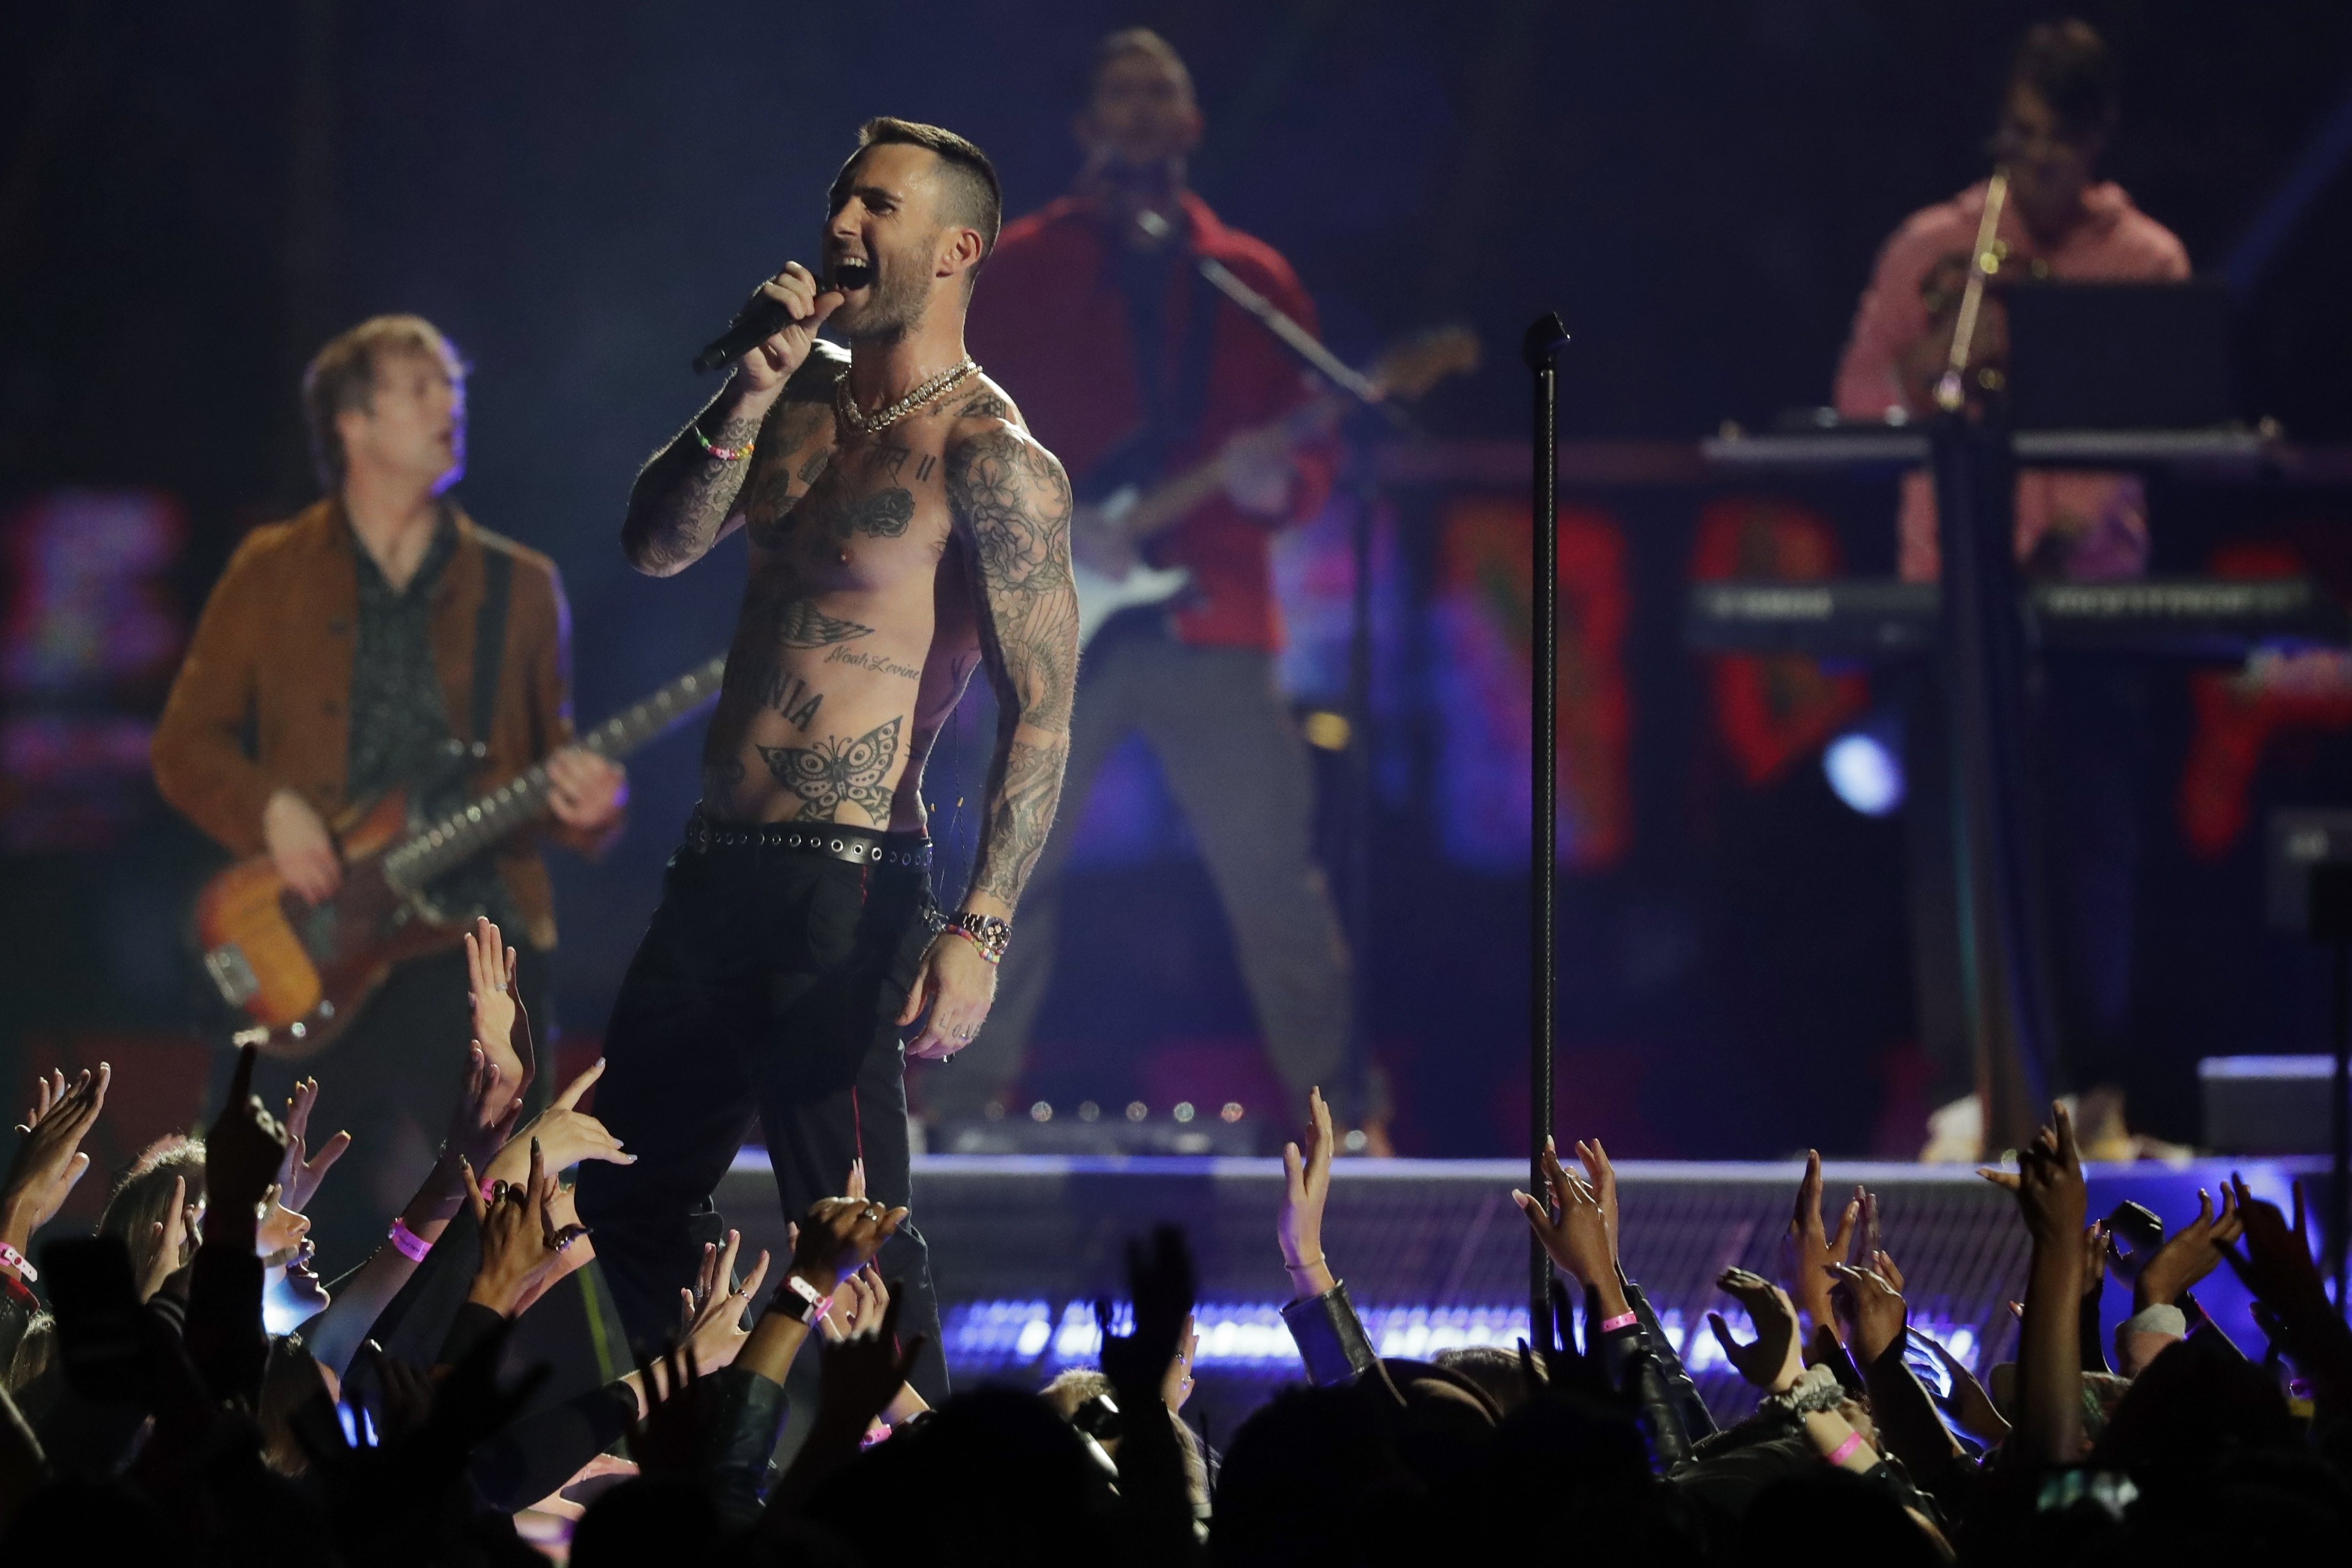 Adam Levine of Maroon 5 performs during halftime of the NFL Super Bowl 53 football game between the Los Angeles Rams and the New England Patriots Sunday, Feb. 3, 2019, in Atlanta.